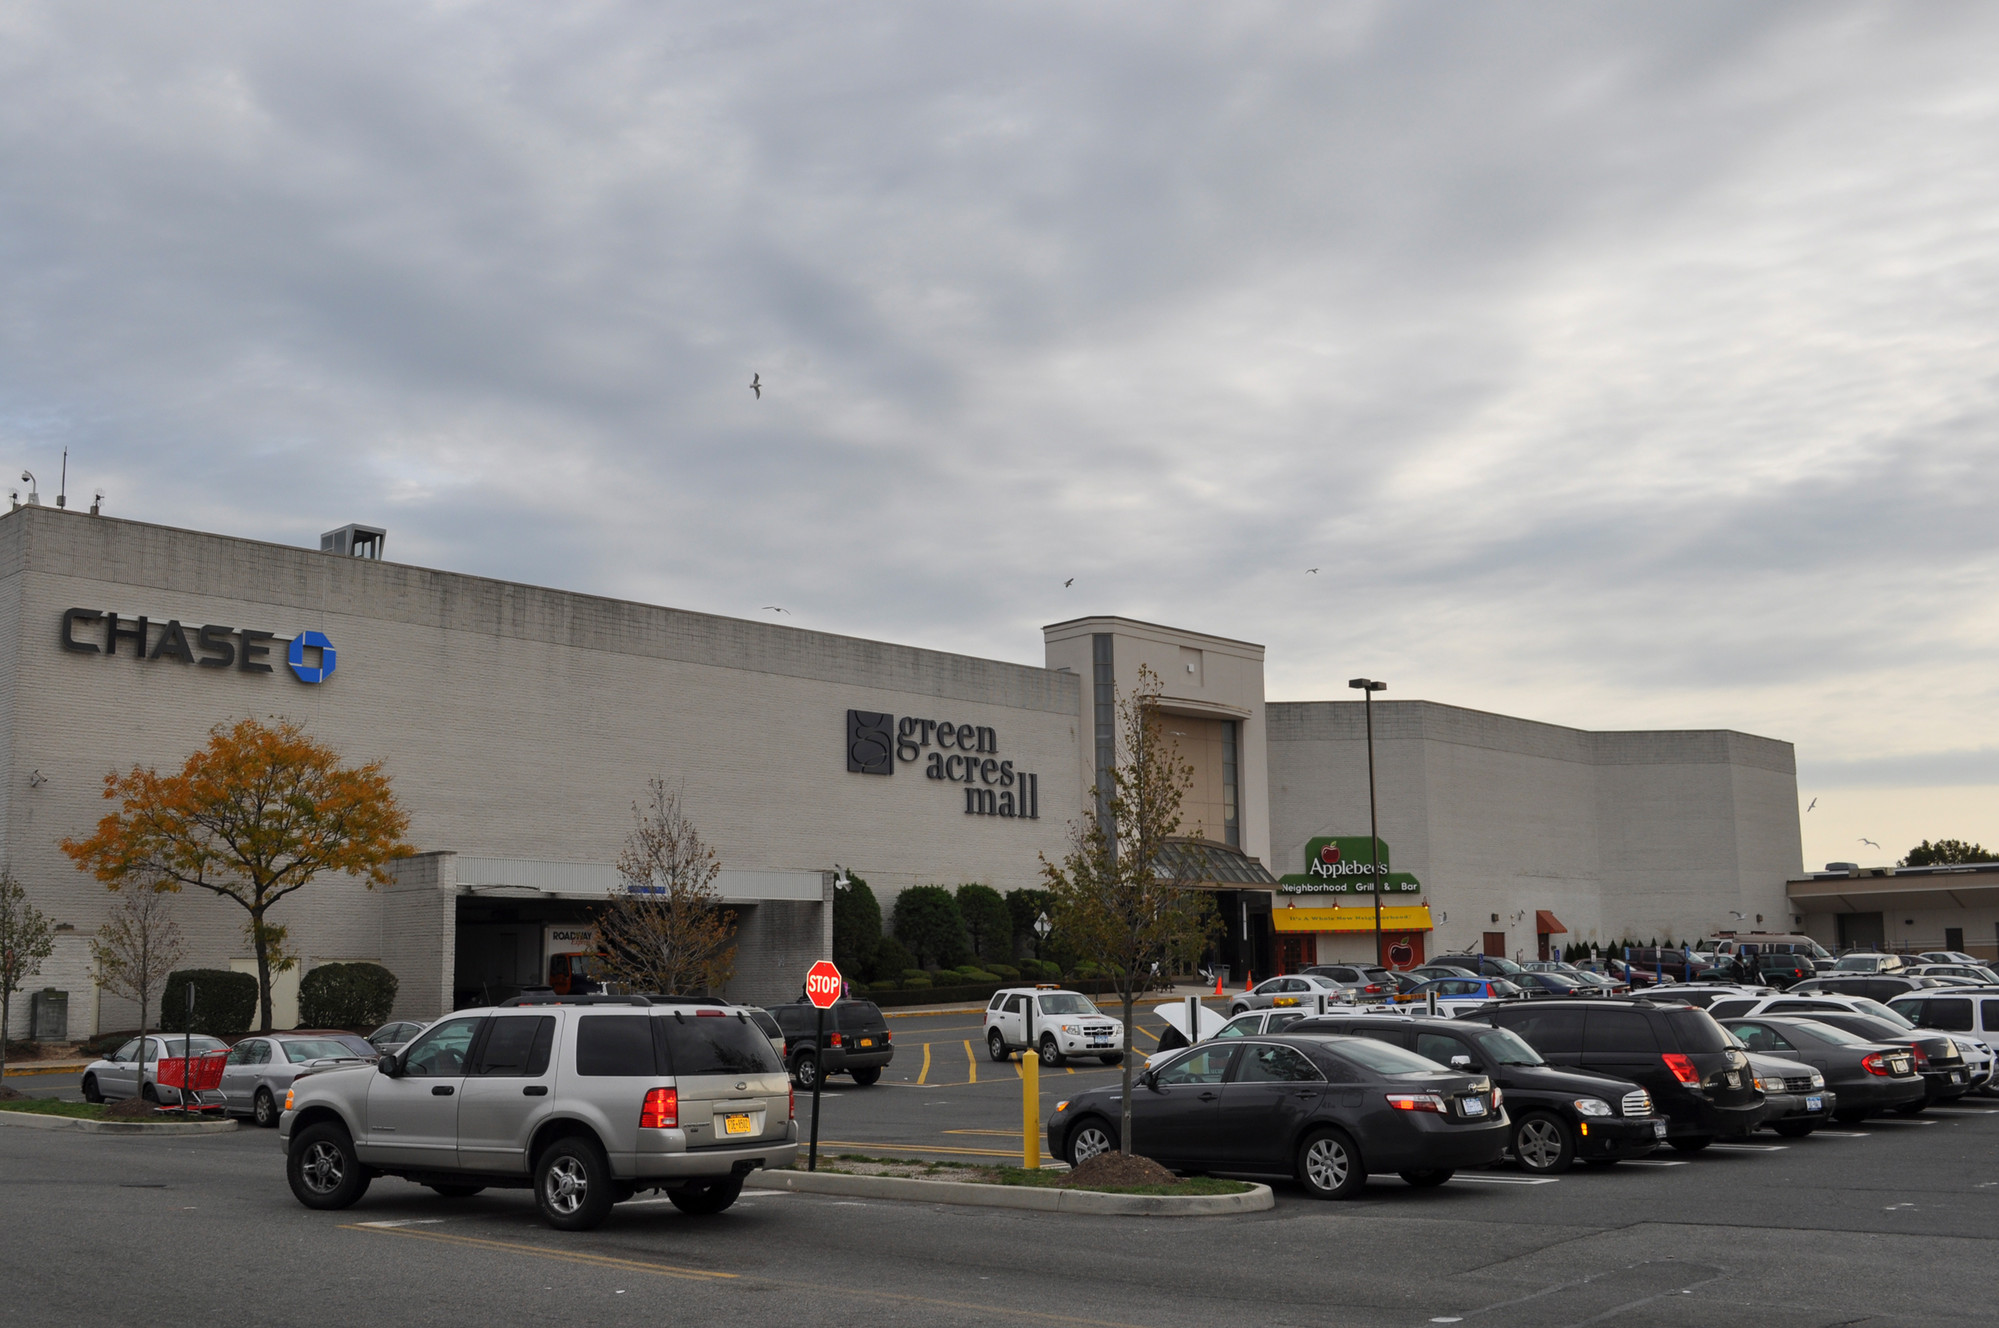 Green Acres Mall in Valley Stream is one of two regional shopping malls in the Town of Hempstead that is subject to new zoning requirements.